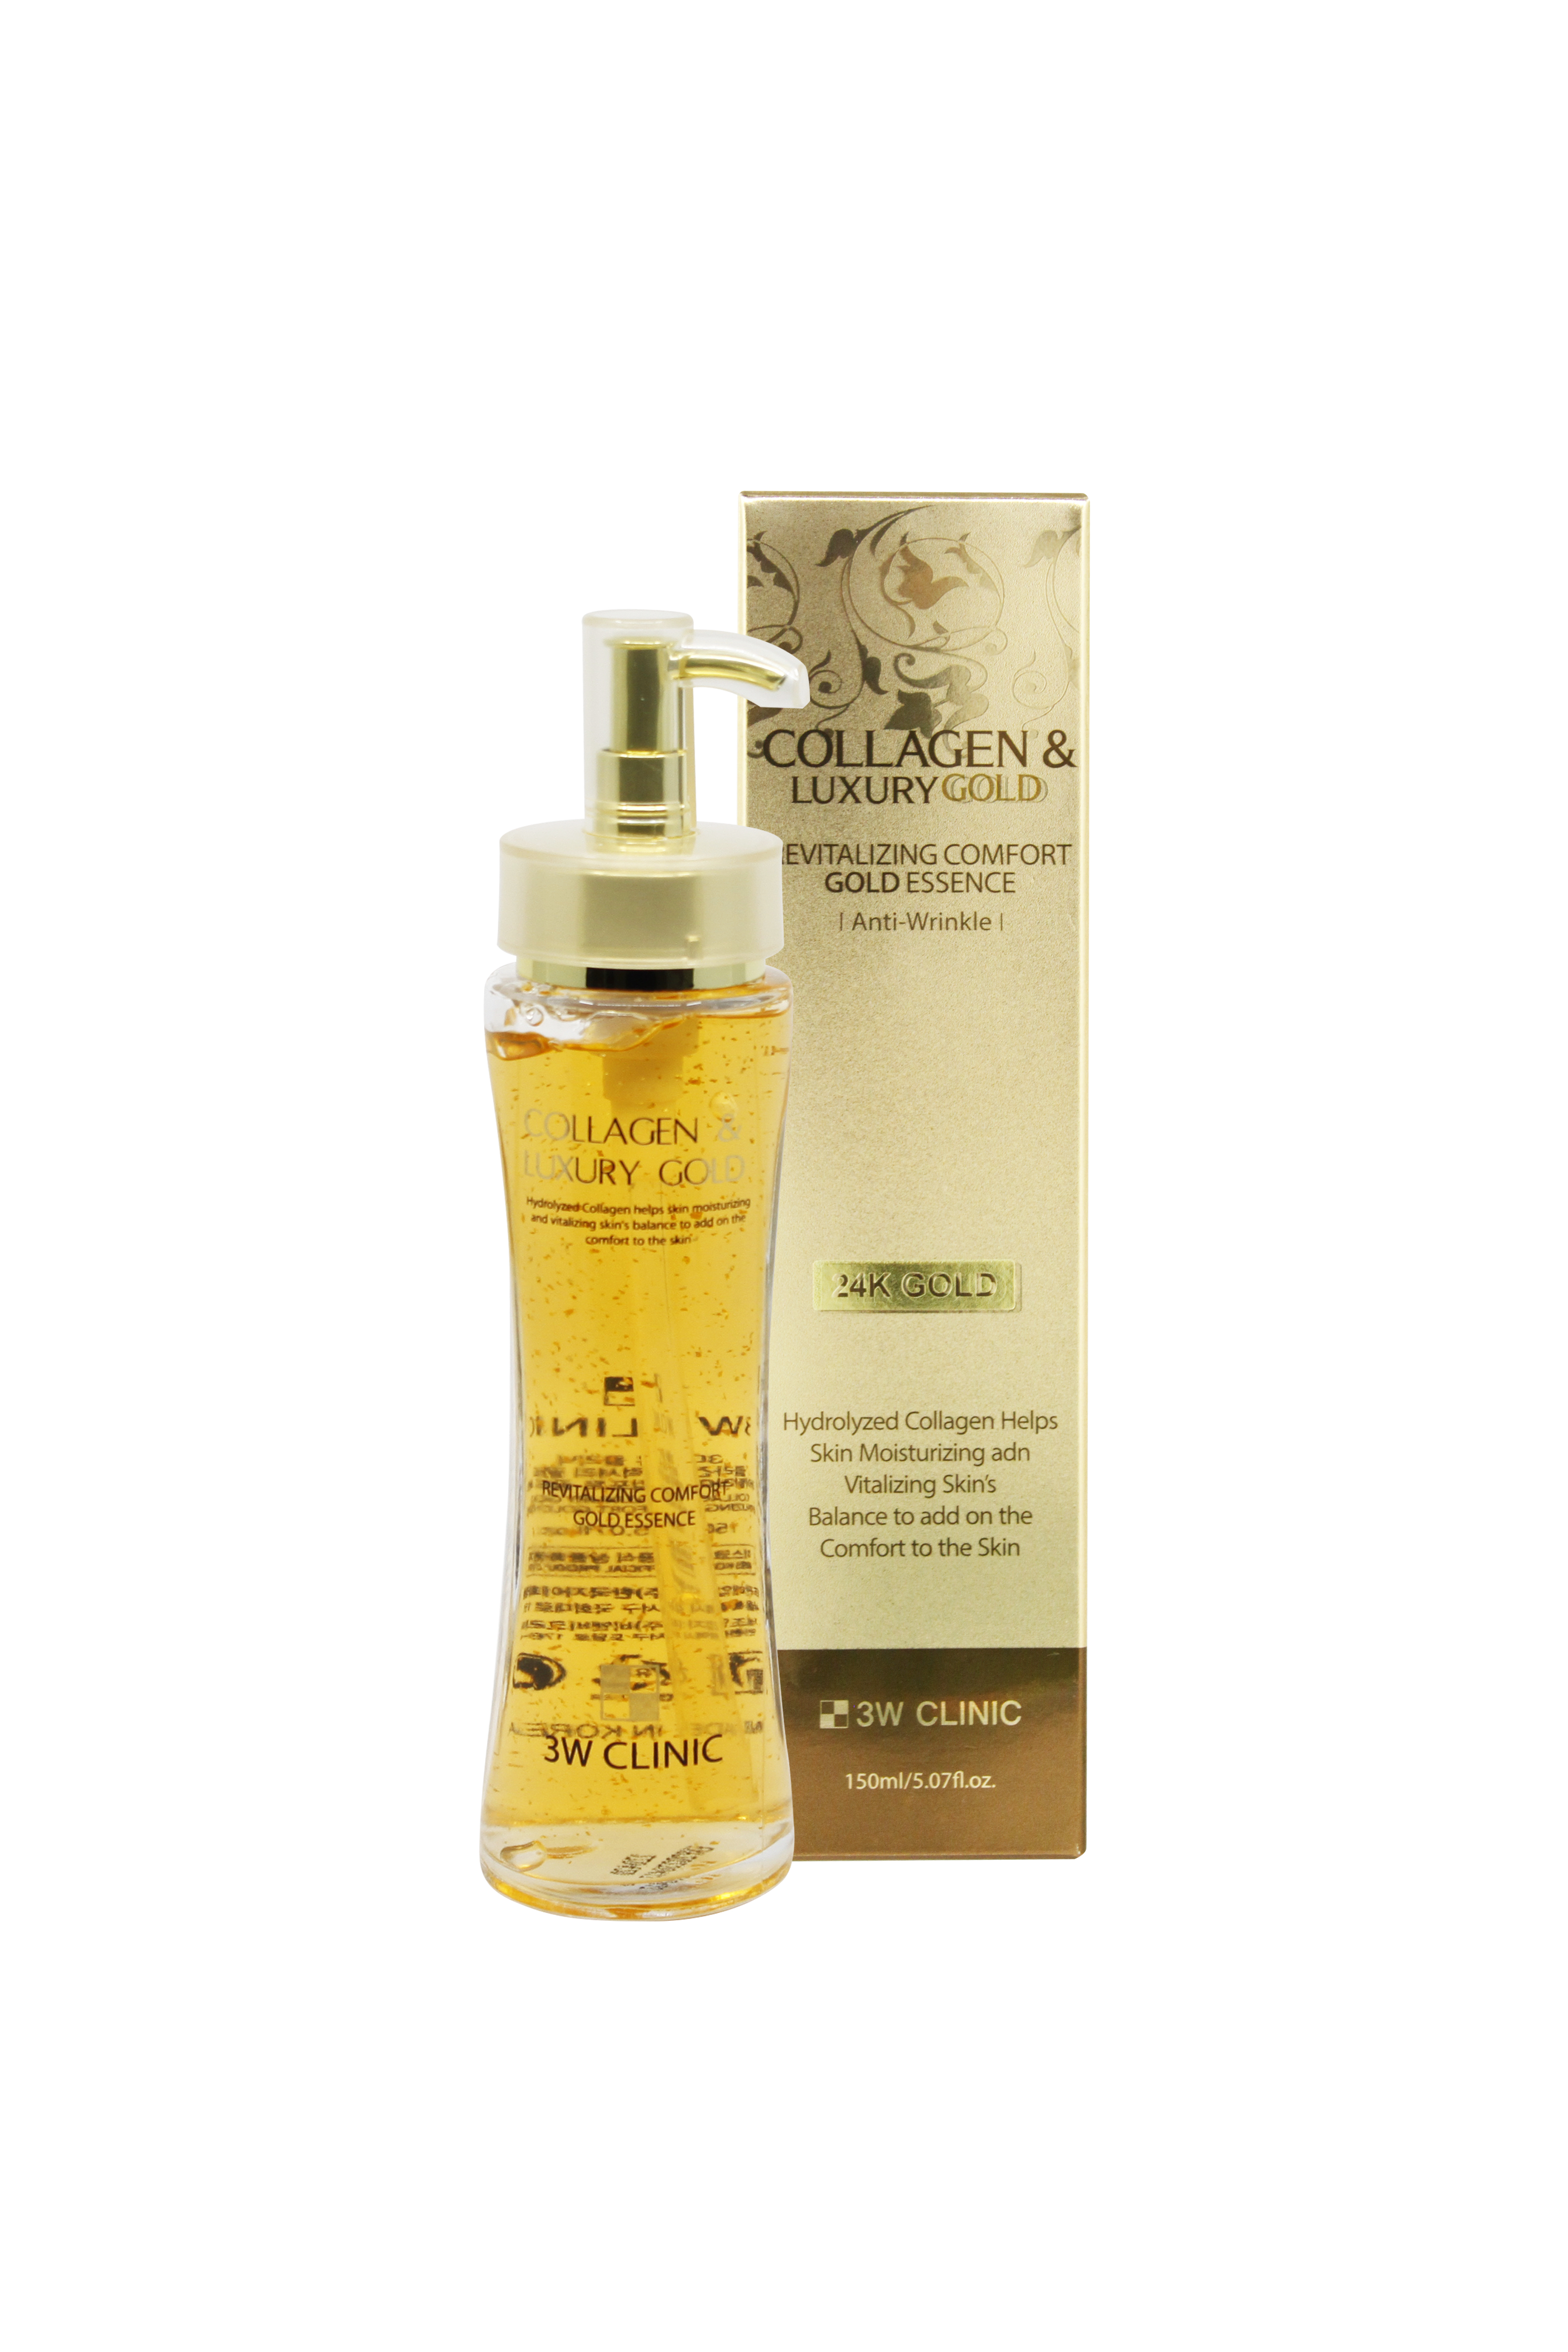 Collagen and Luxury Gold Essence by 3W Clinic